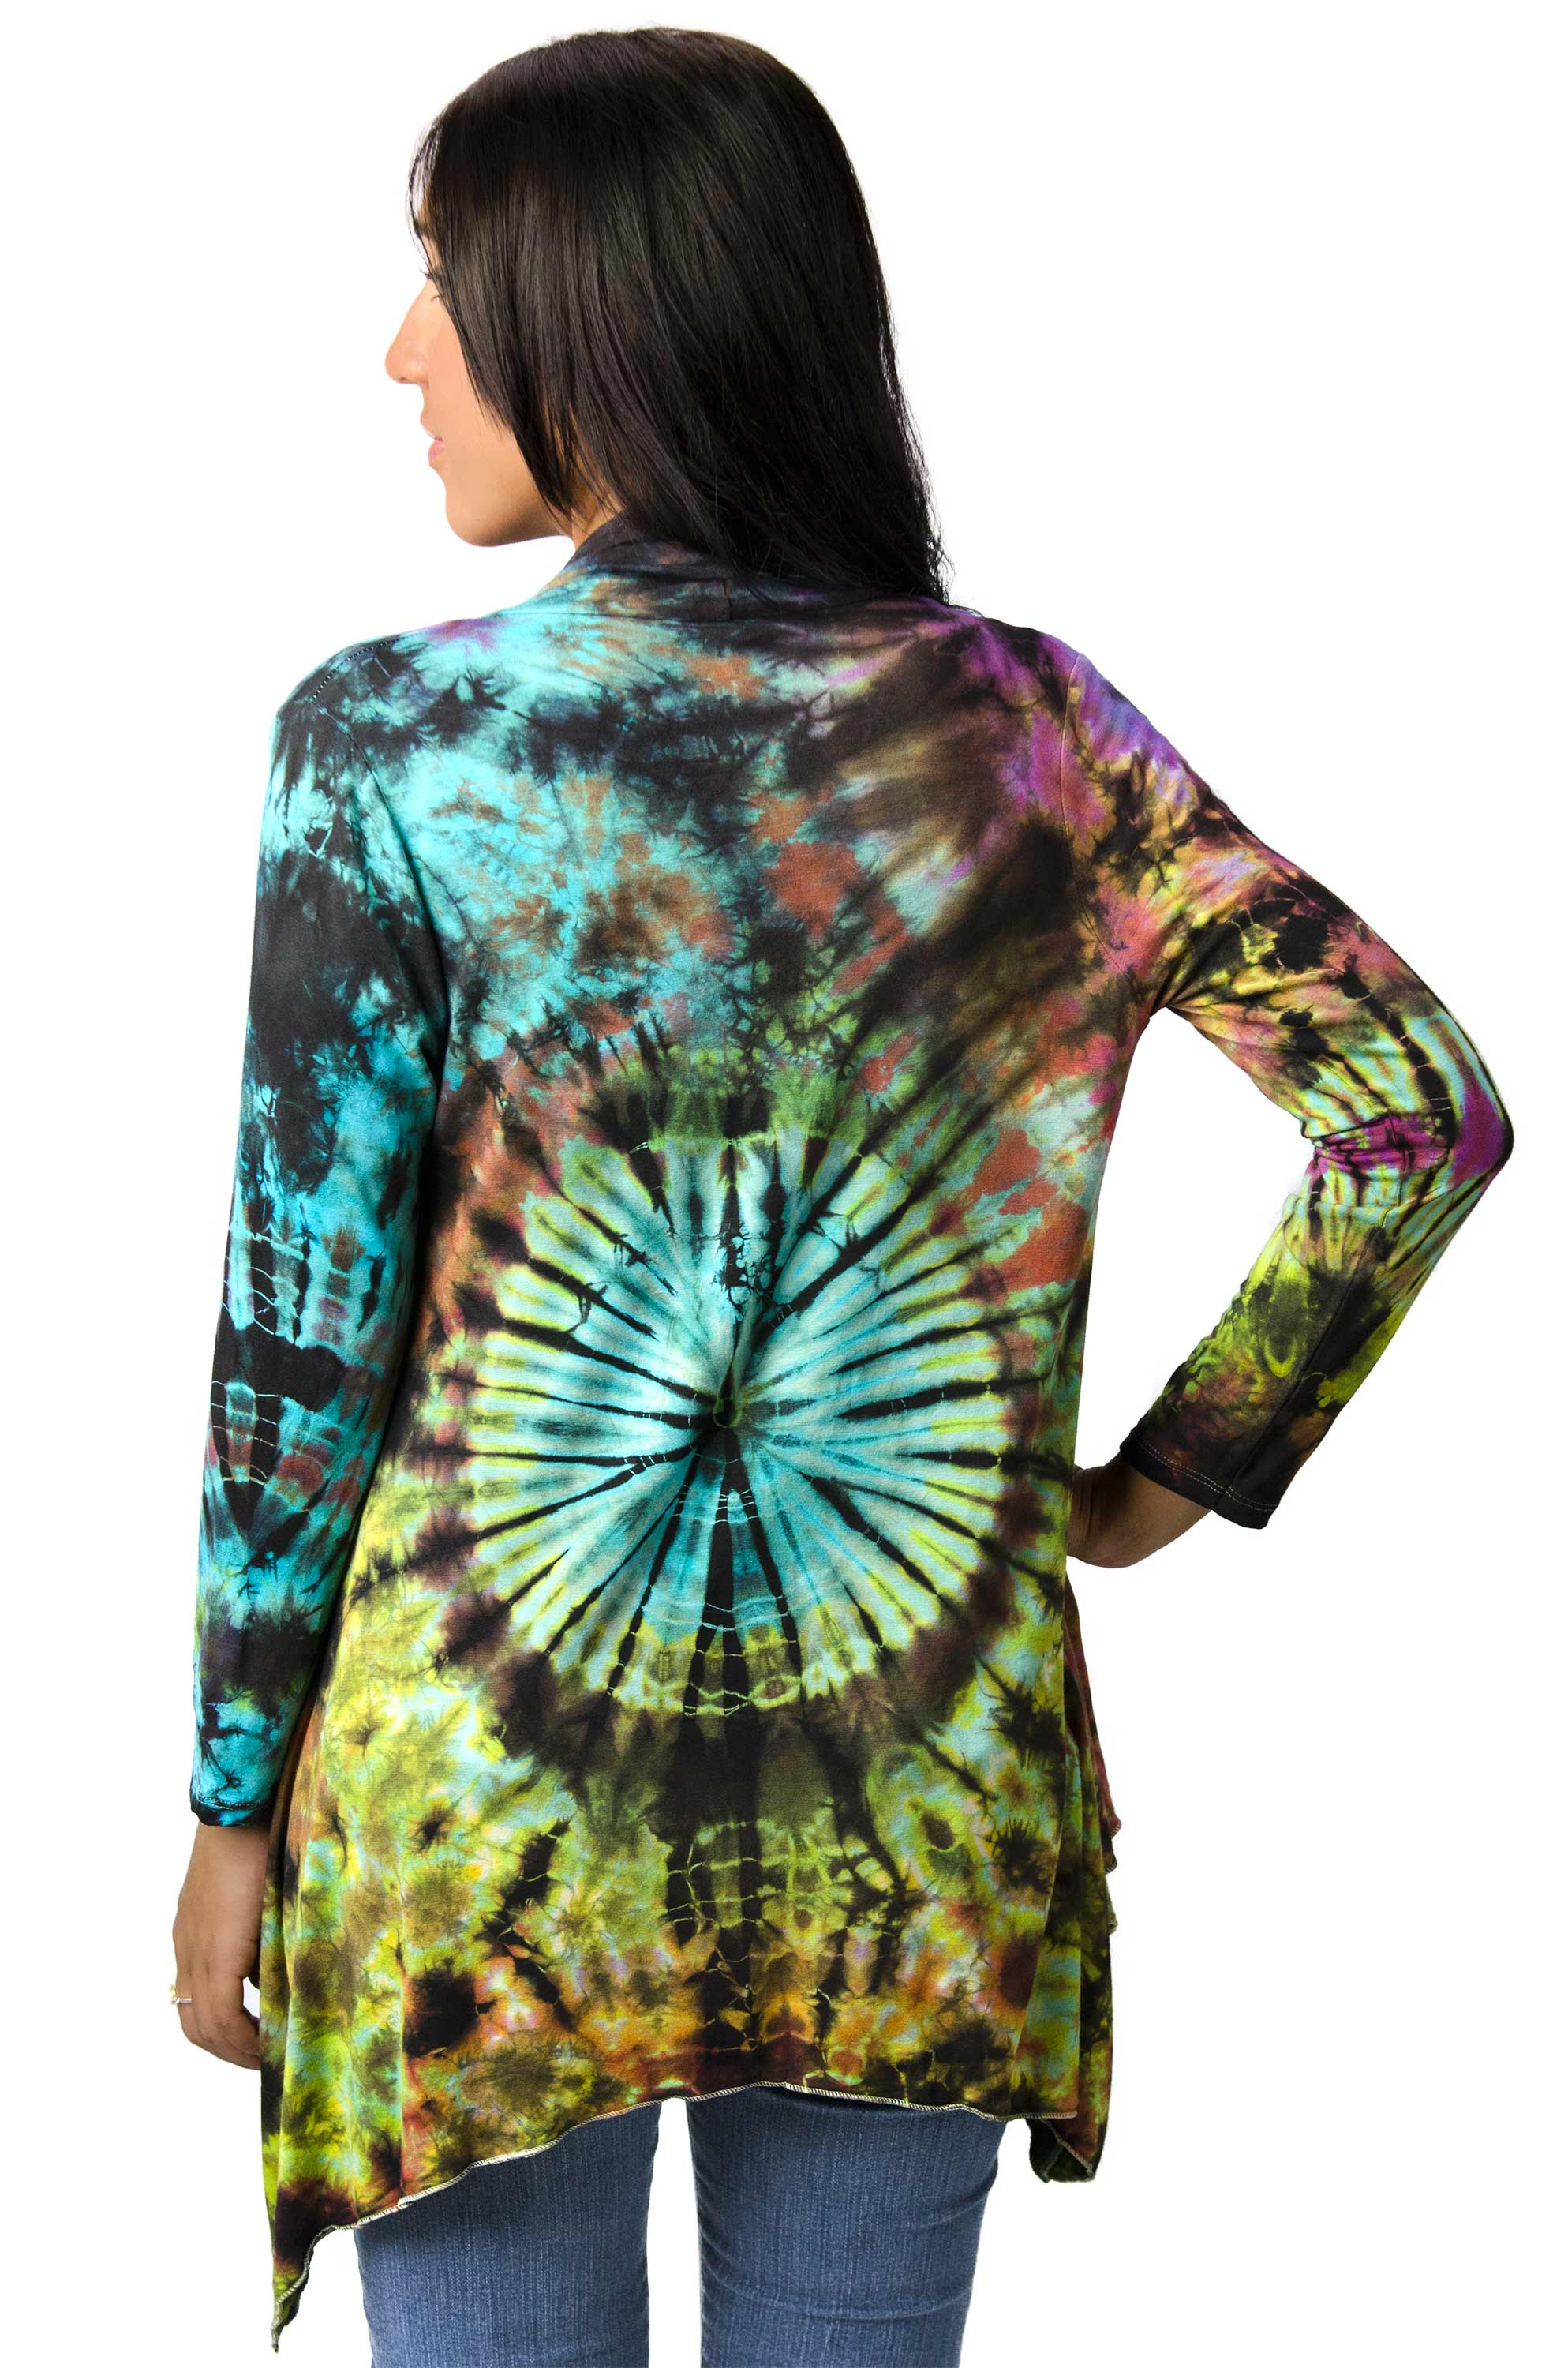 Kimono Cardigan Hand Painted Tie Dye - Everything Multi